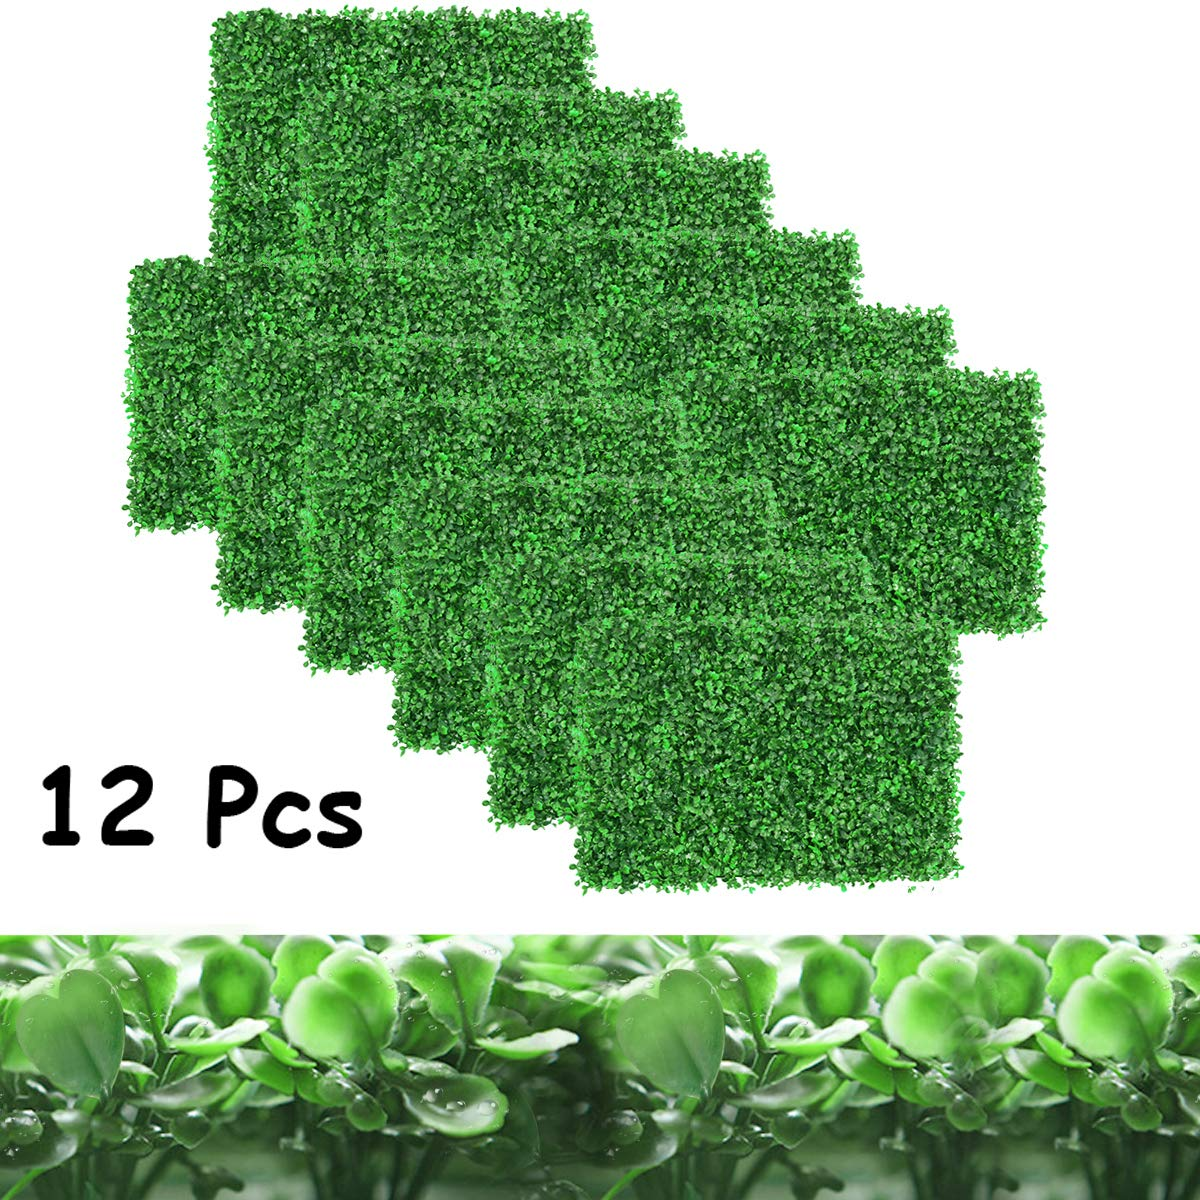 DQS Artificial Boxwood Panels - 12 Pieces of Faux Hedge Wall Backdrop, 24 x 16 Inch Green Boxwood Wall Mat for Outdoor, Balcony, Garden Fence Screen and Indoor Wall Decoration